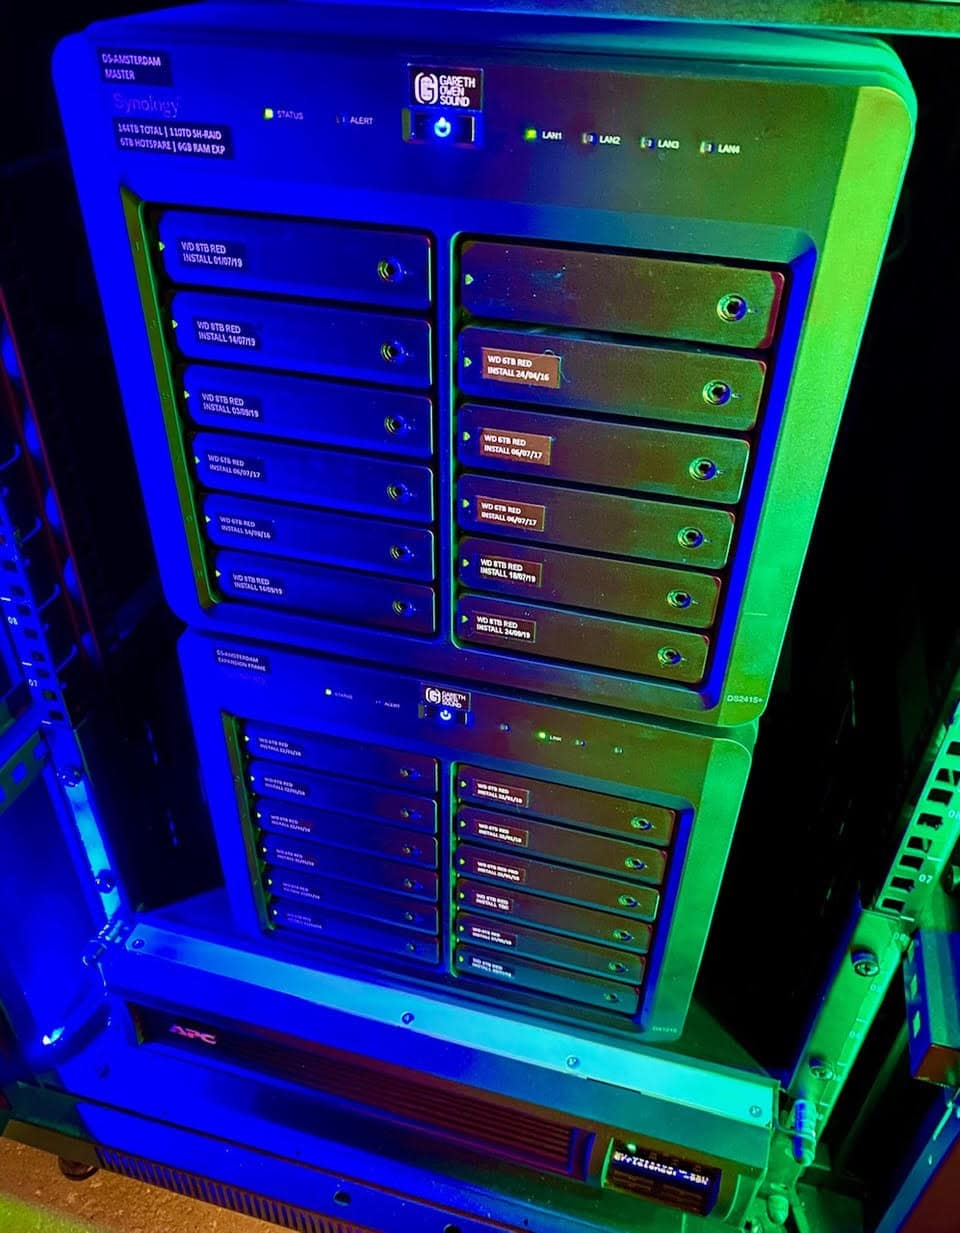 Copious amounts of data are stored and protected by an 8 TB Synology NAS DiskStation and an APC UPS battery backup and surge protector.